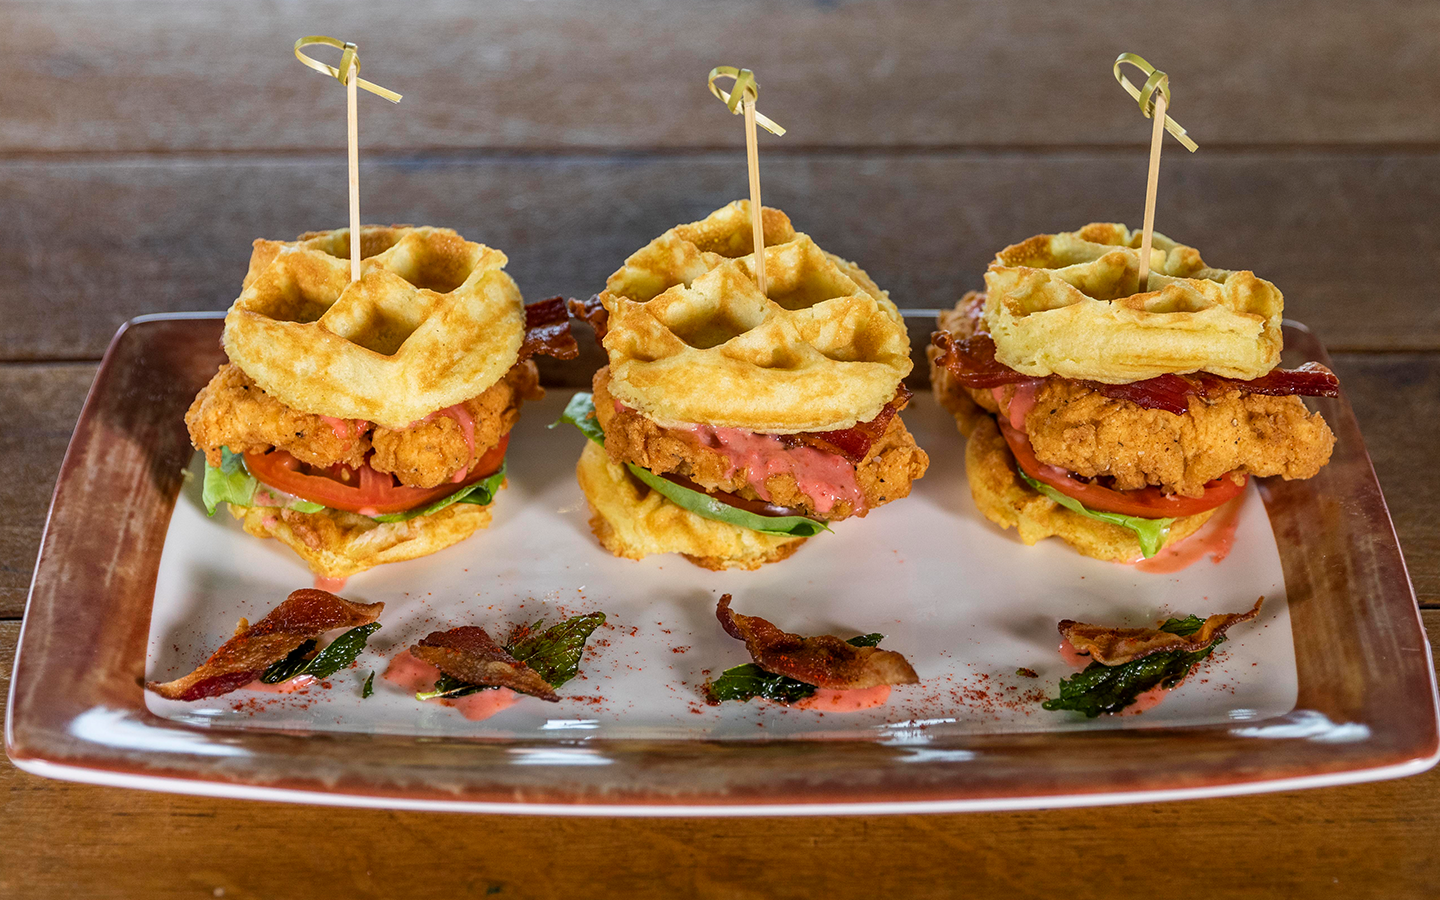 Chicken & Waffle Sliders from Toothsome Chocolate Emporium & Savory Feast Kitchen